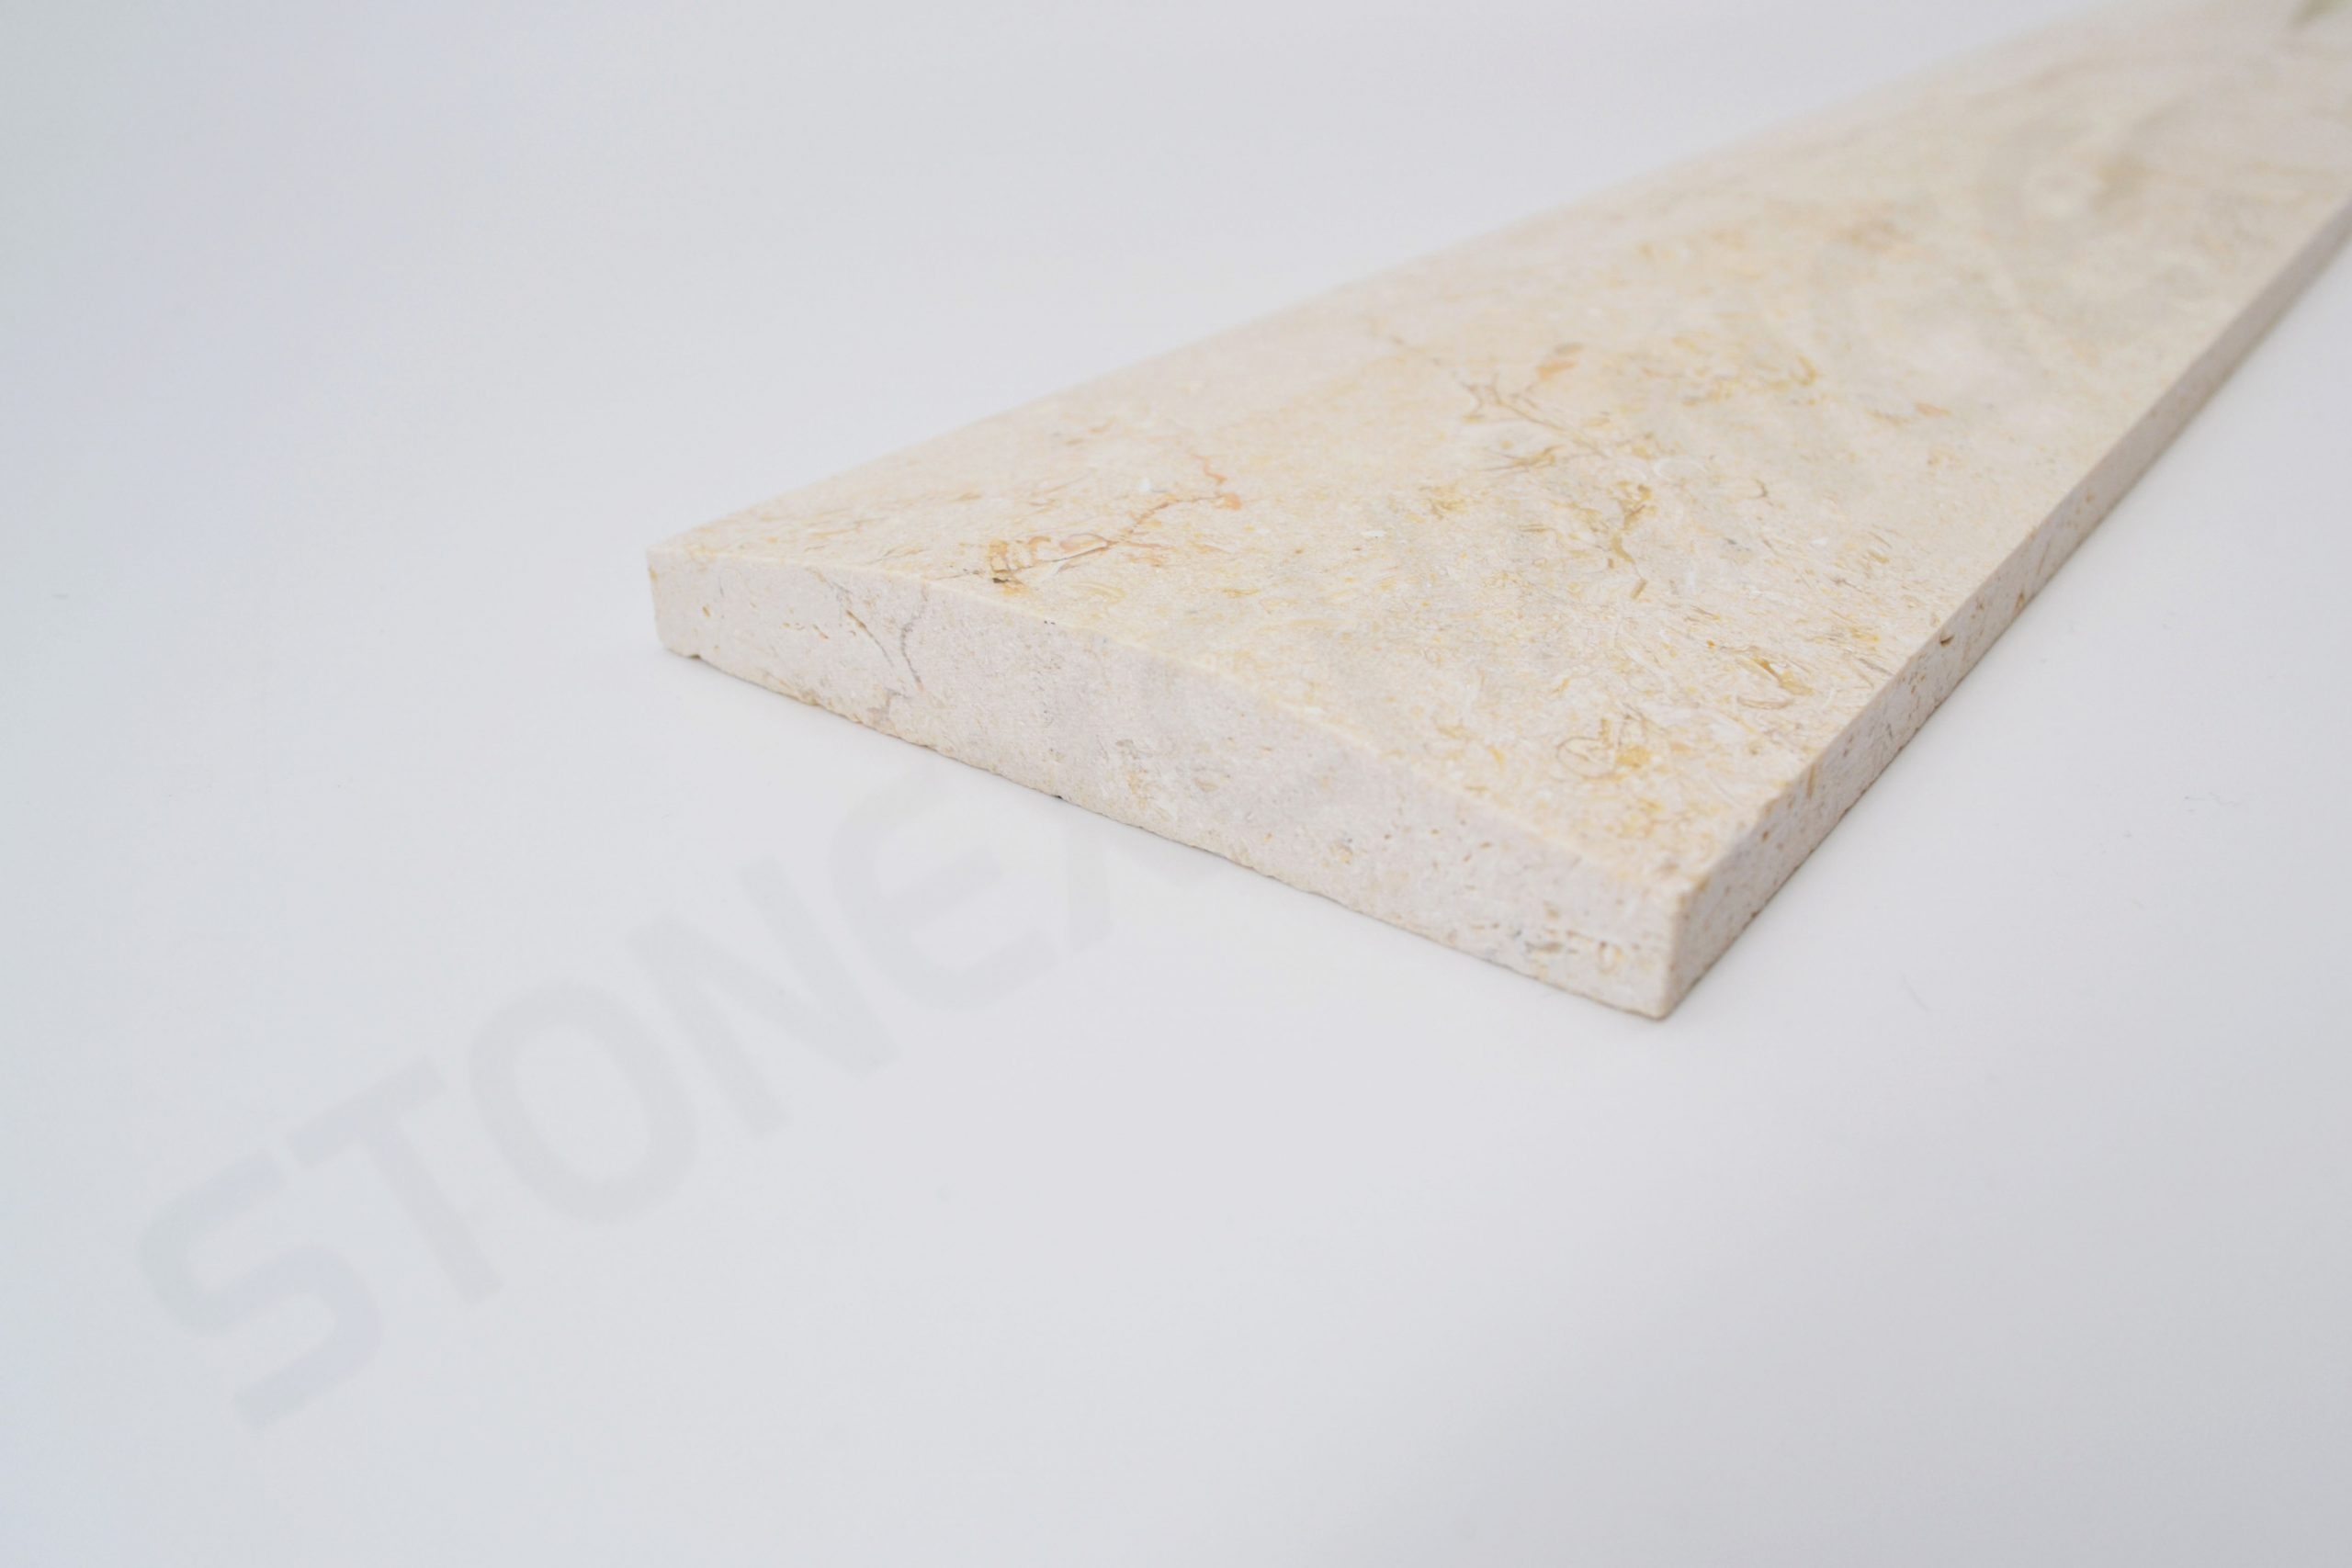 Crema Marfil Marble Double Hollywood Bevel Threshold 4x36